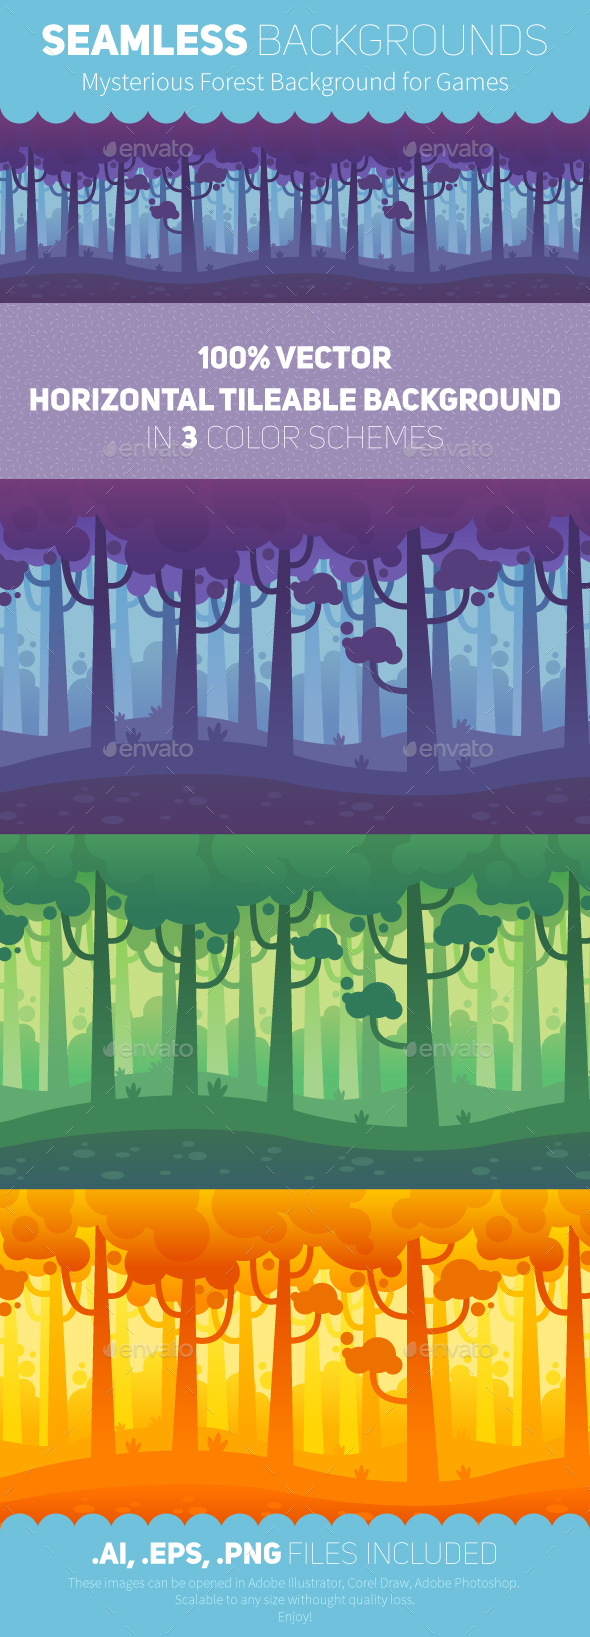 Game Seamless Forest Backgrounds - Vectors